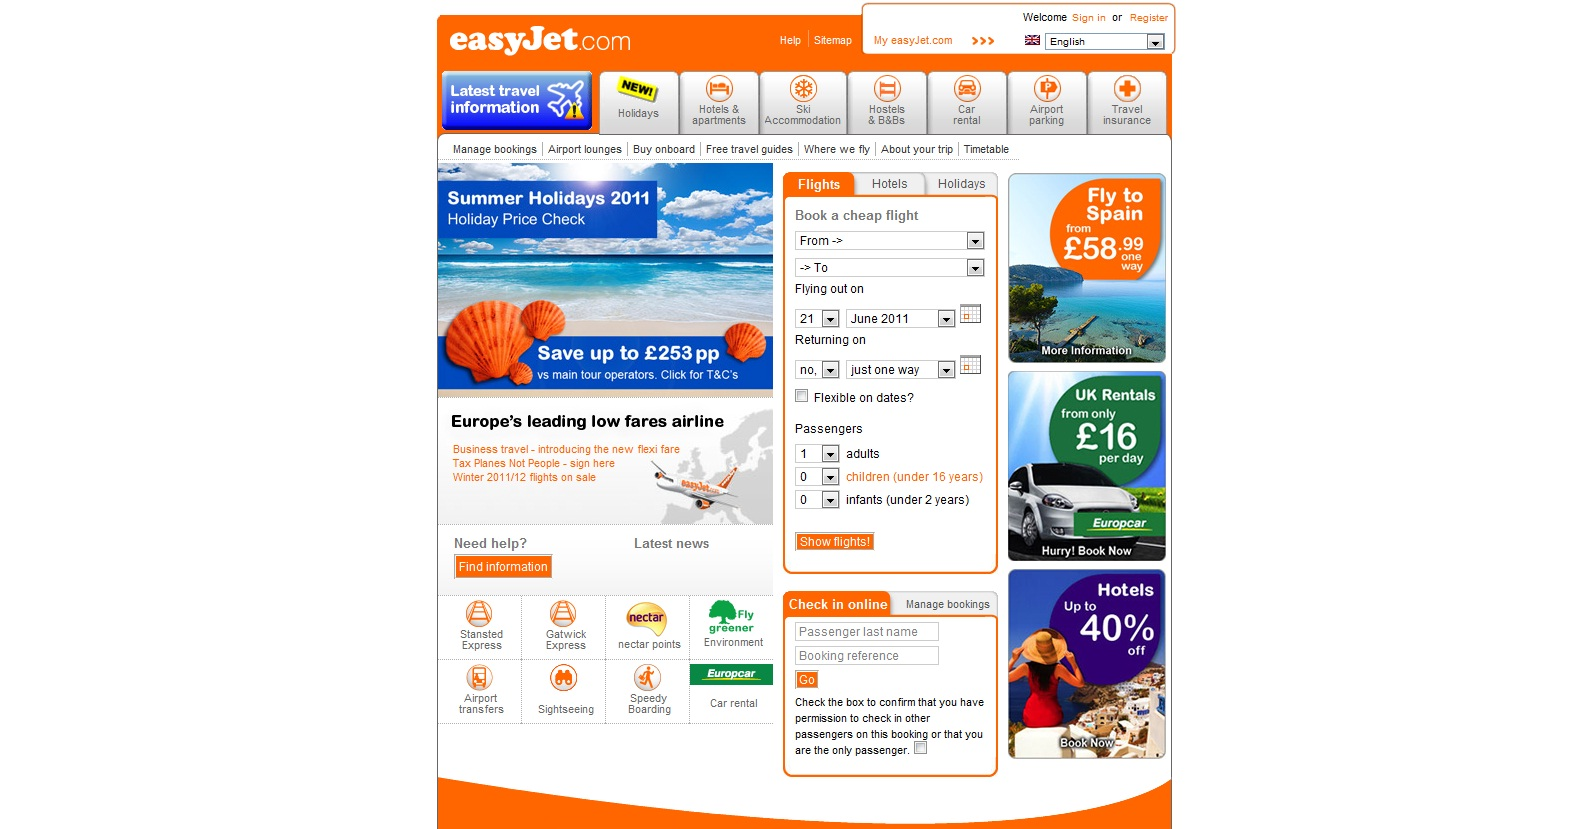 easyjet notes Github is where people build software more than 27 million people use github to discover, fork, and contribute to over 80 million projects.